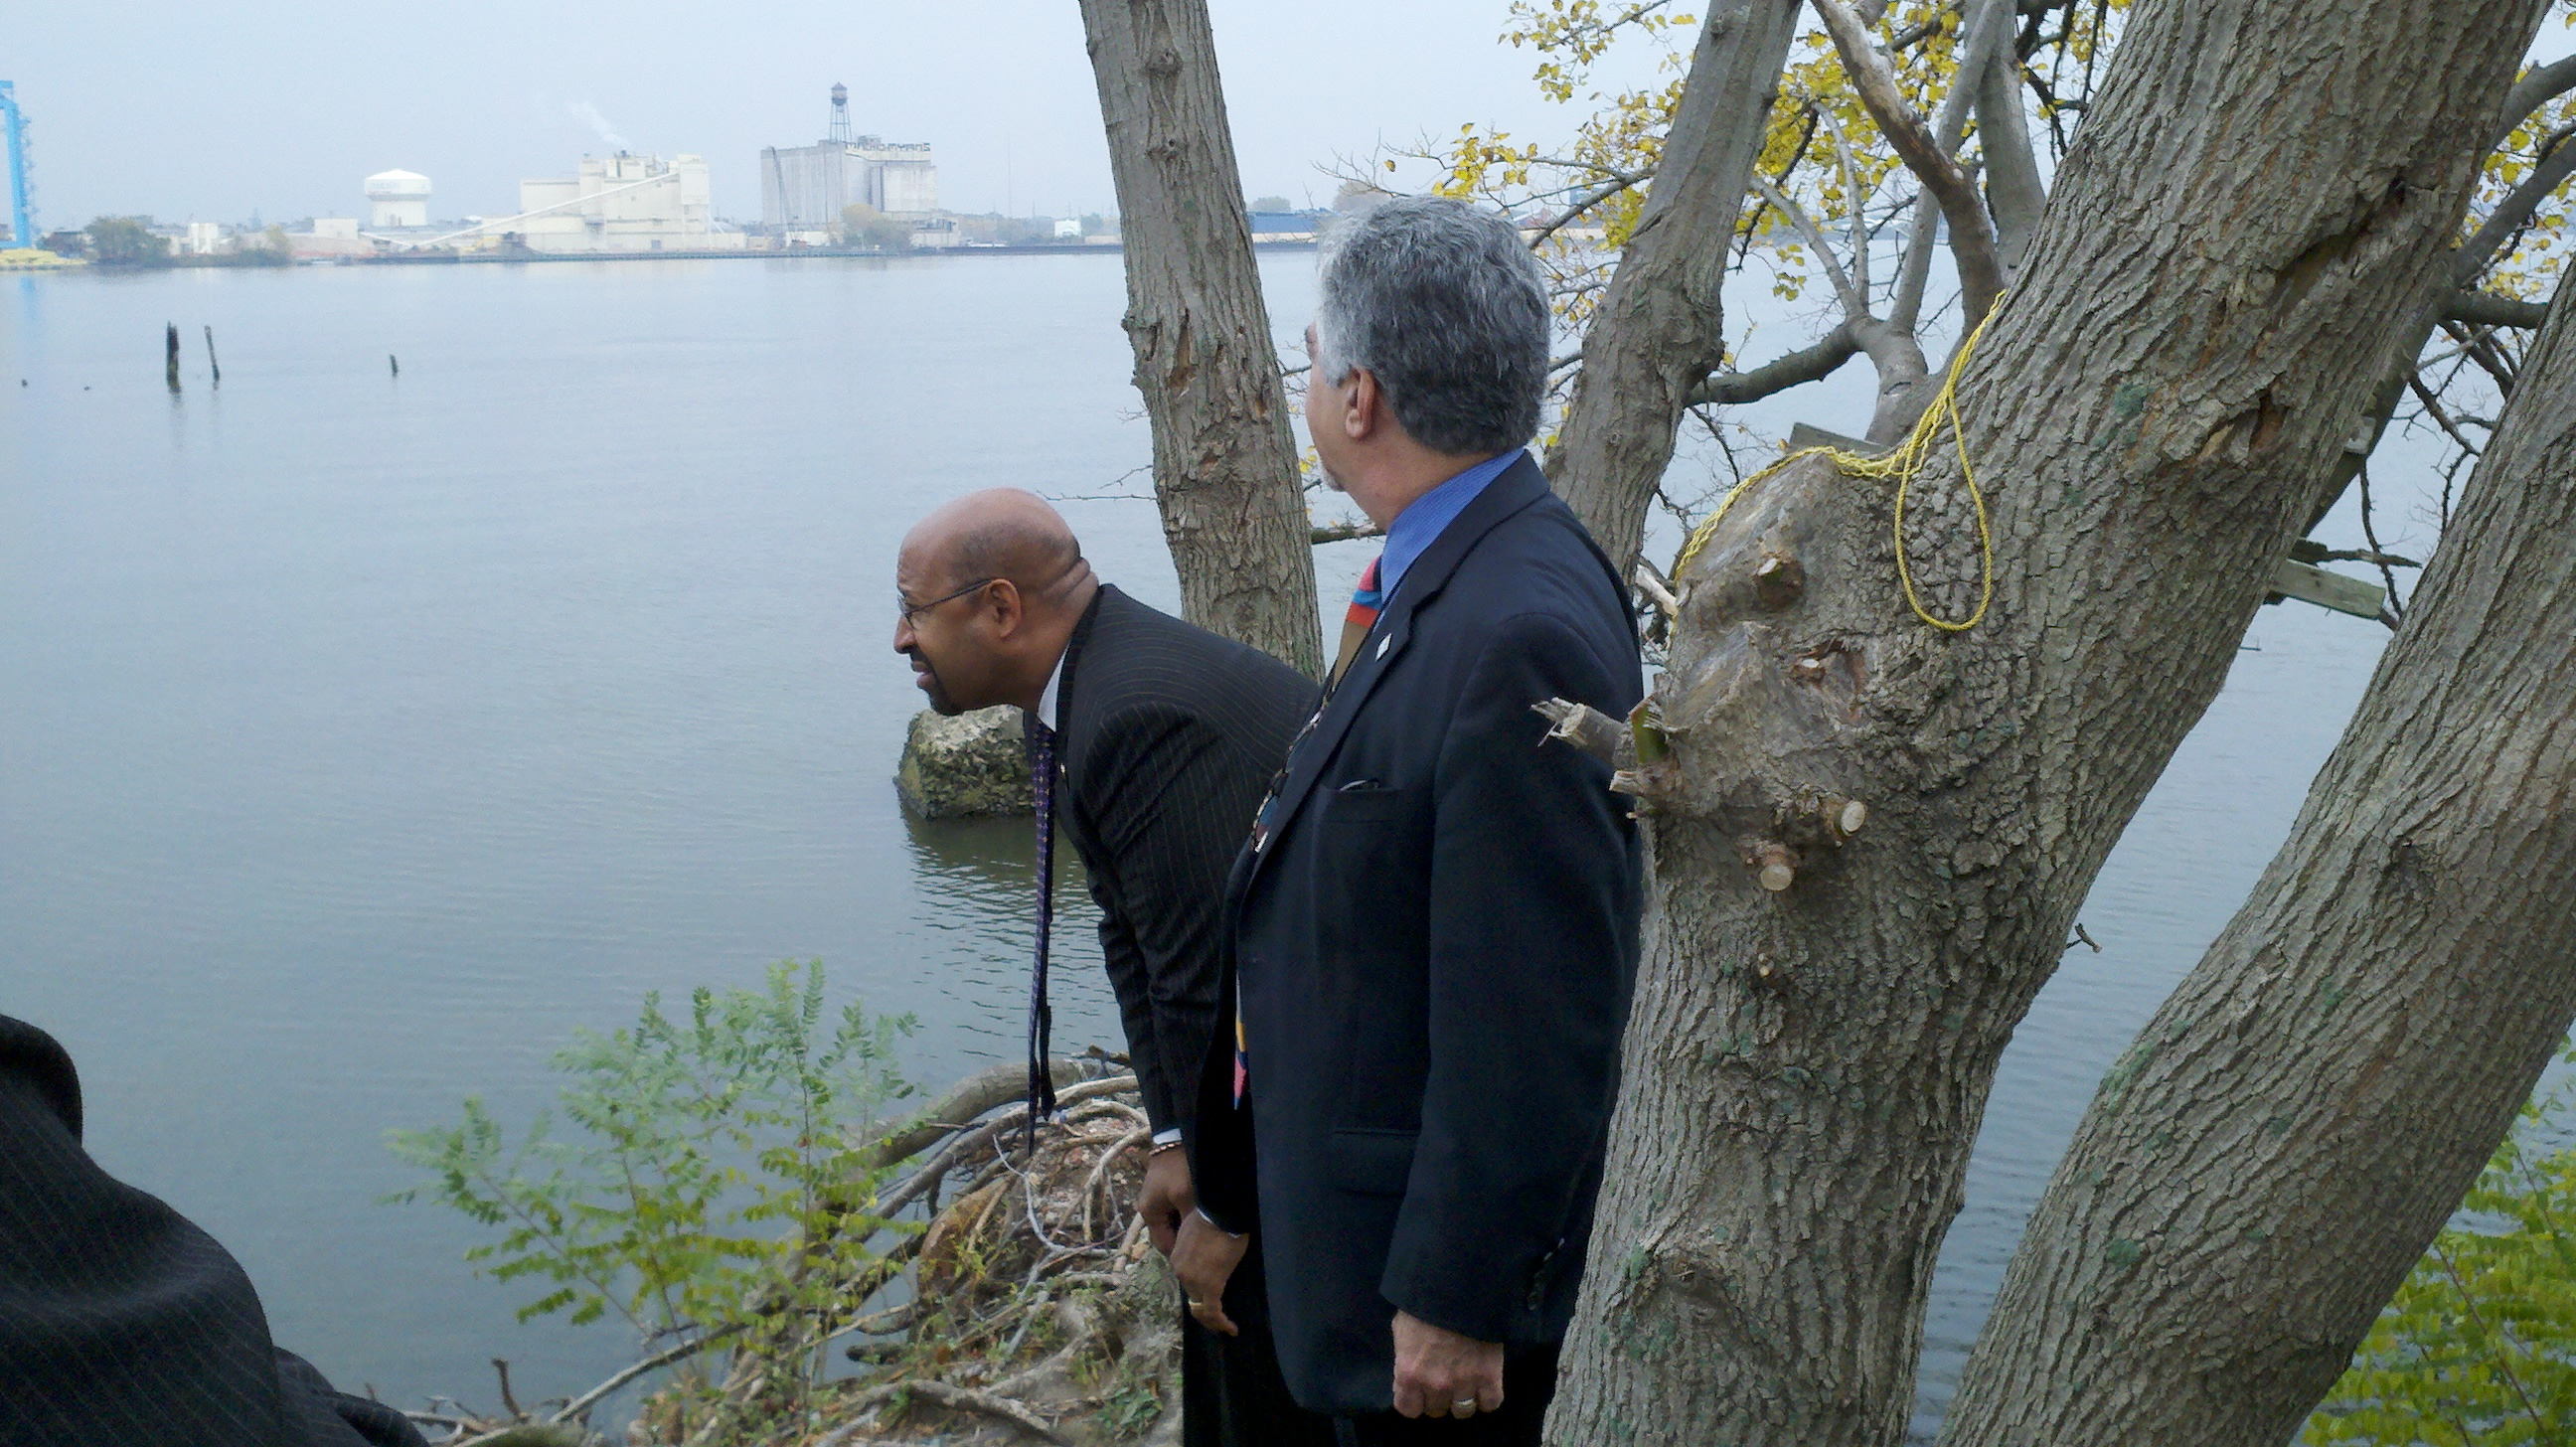 Mayor Nutter and Deputy Mayor Greenberger take in the views